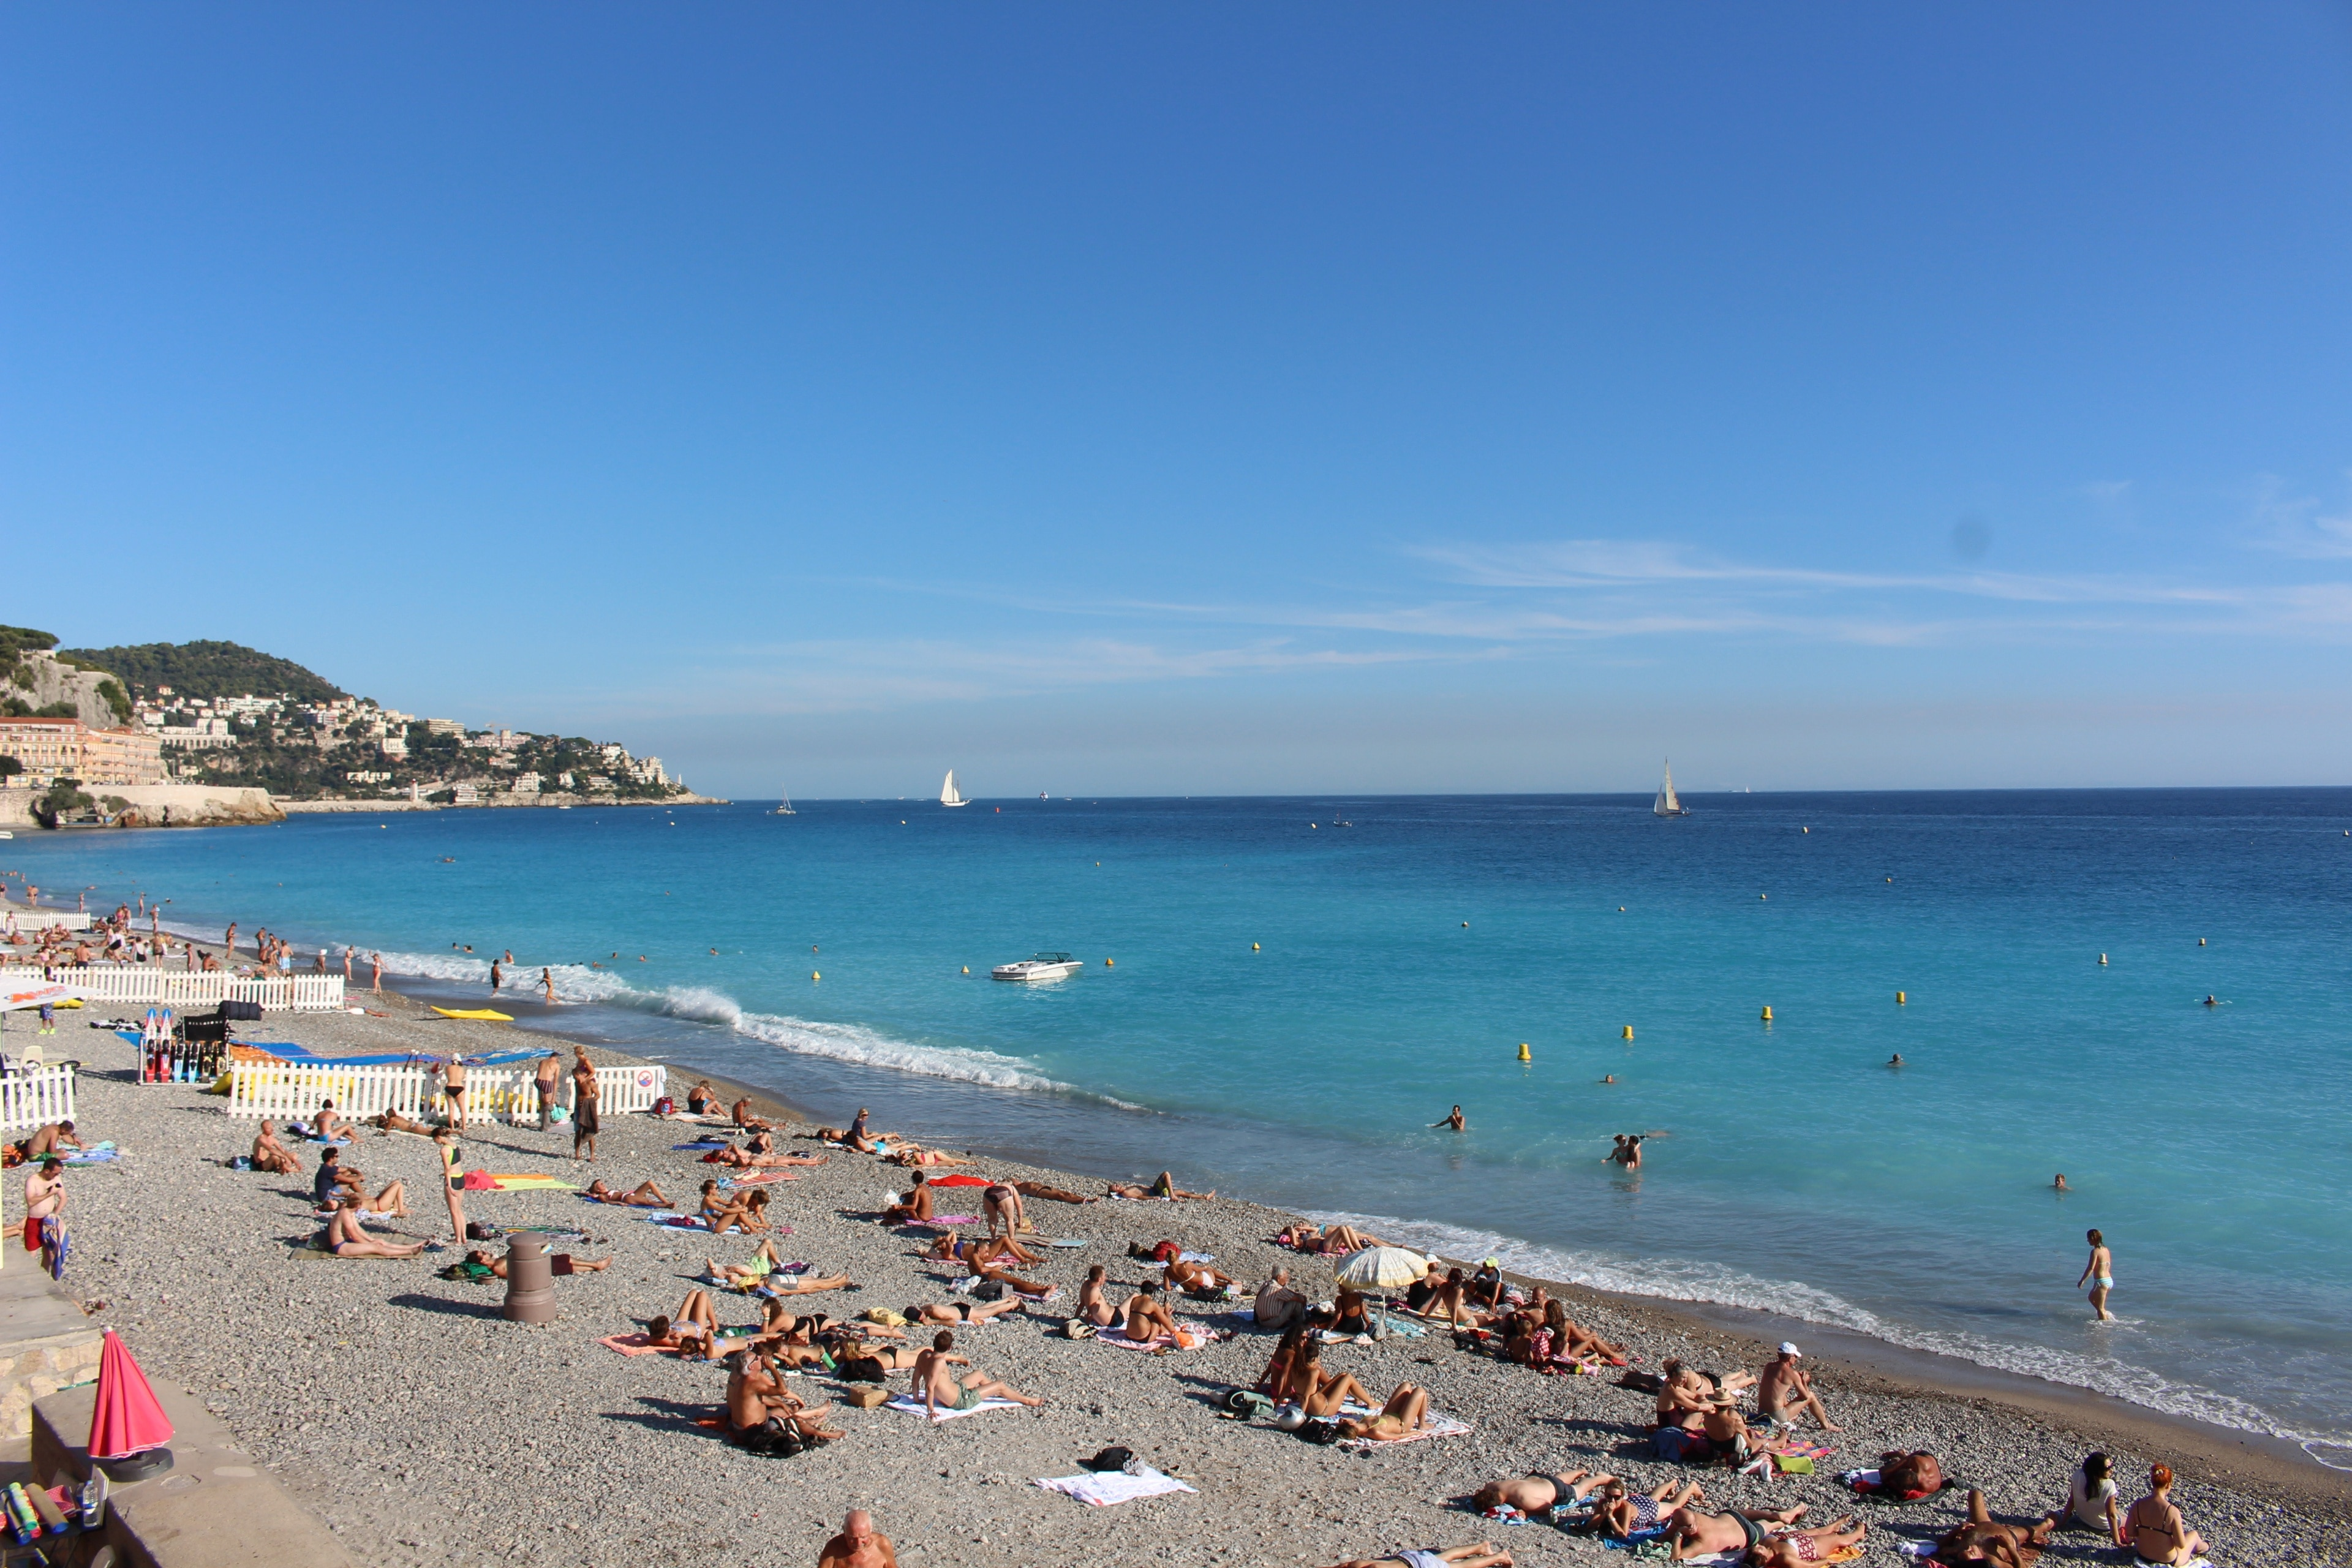 Quay of the United States, Nice, Alpes-Maritimes, France